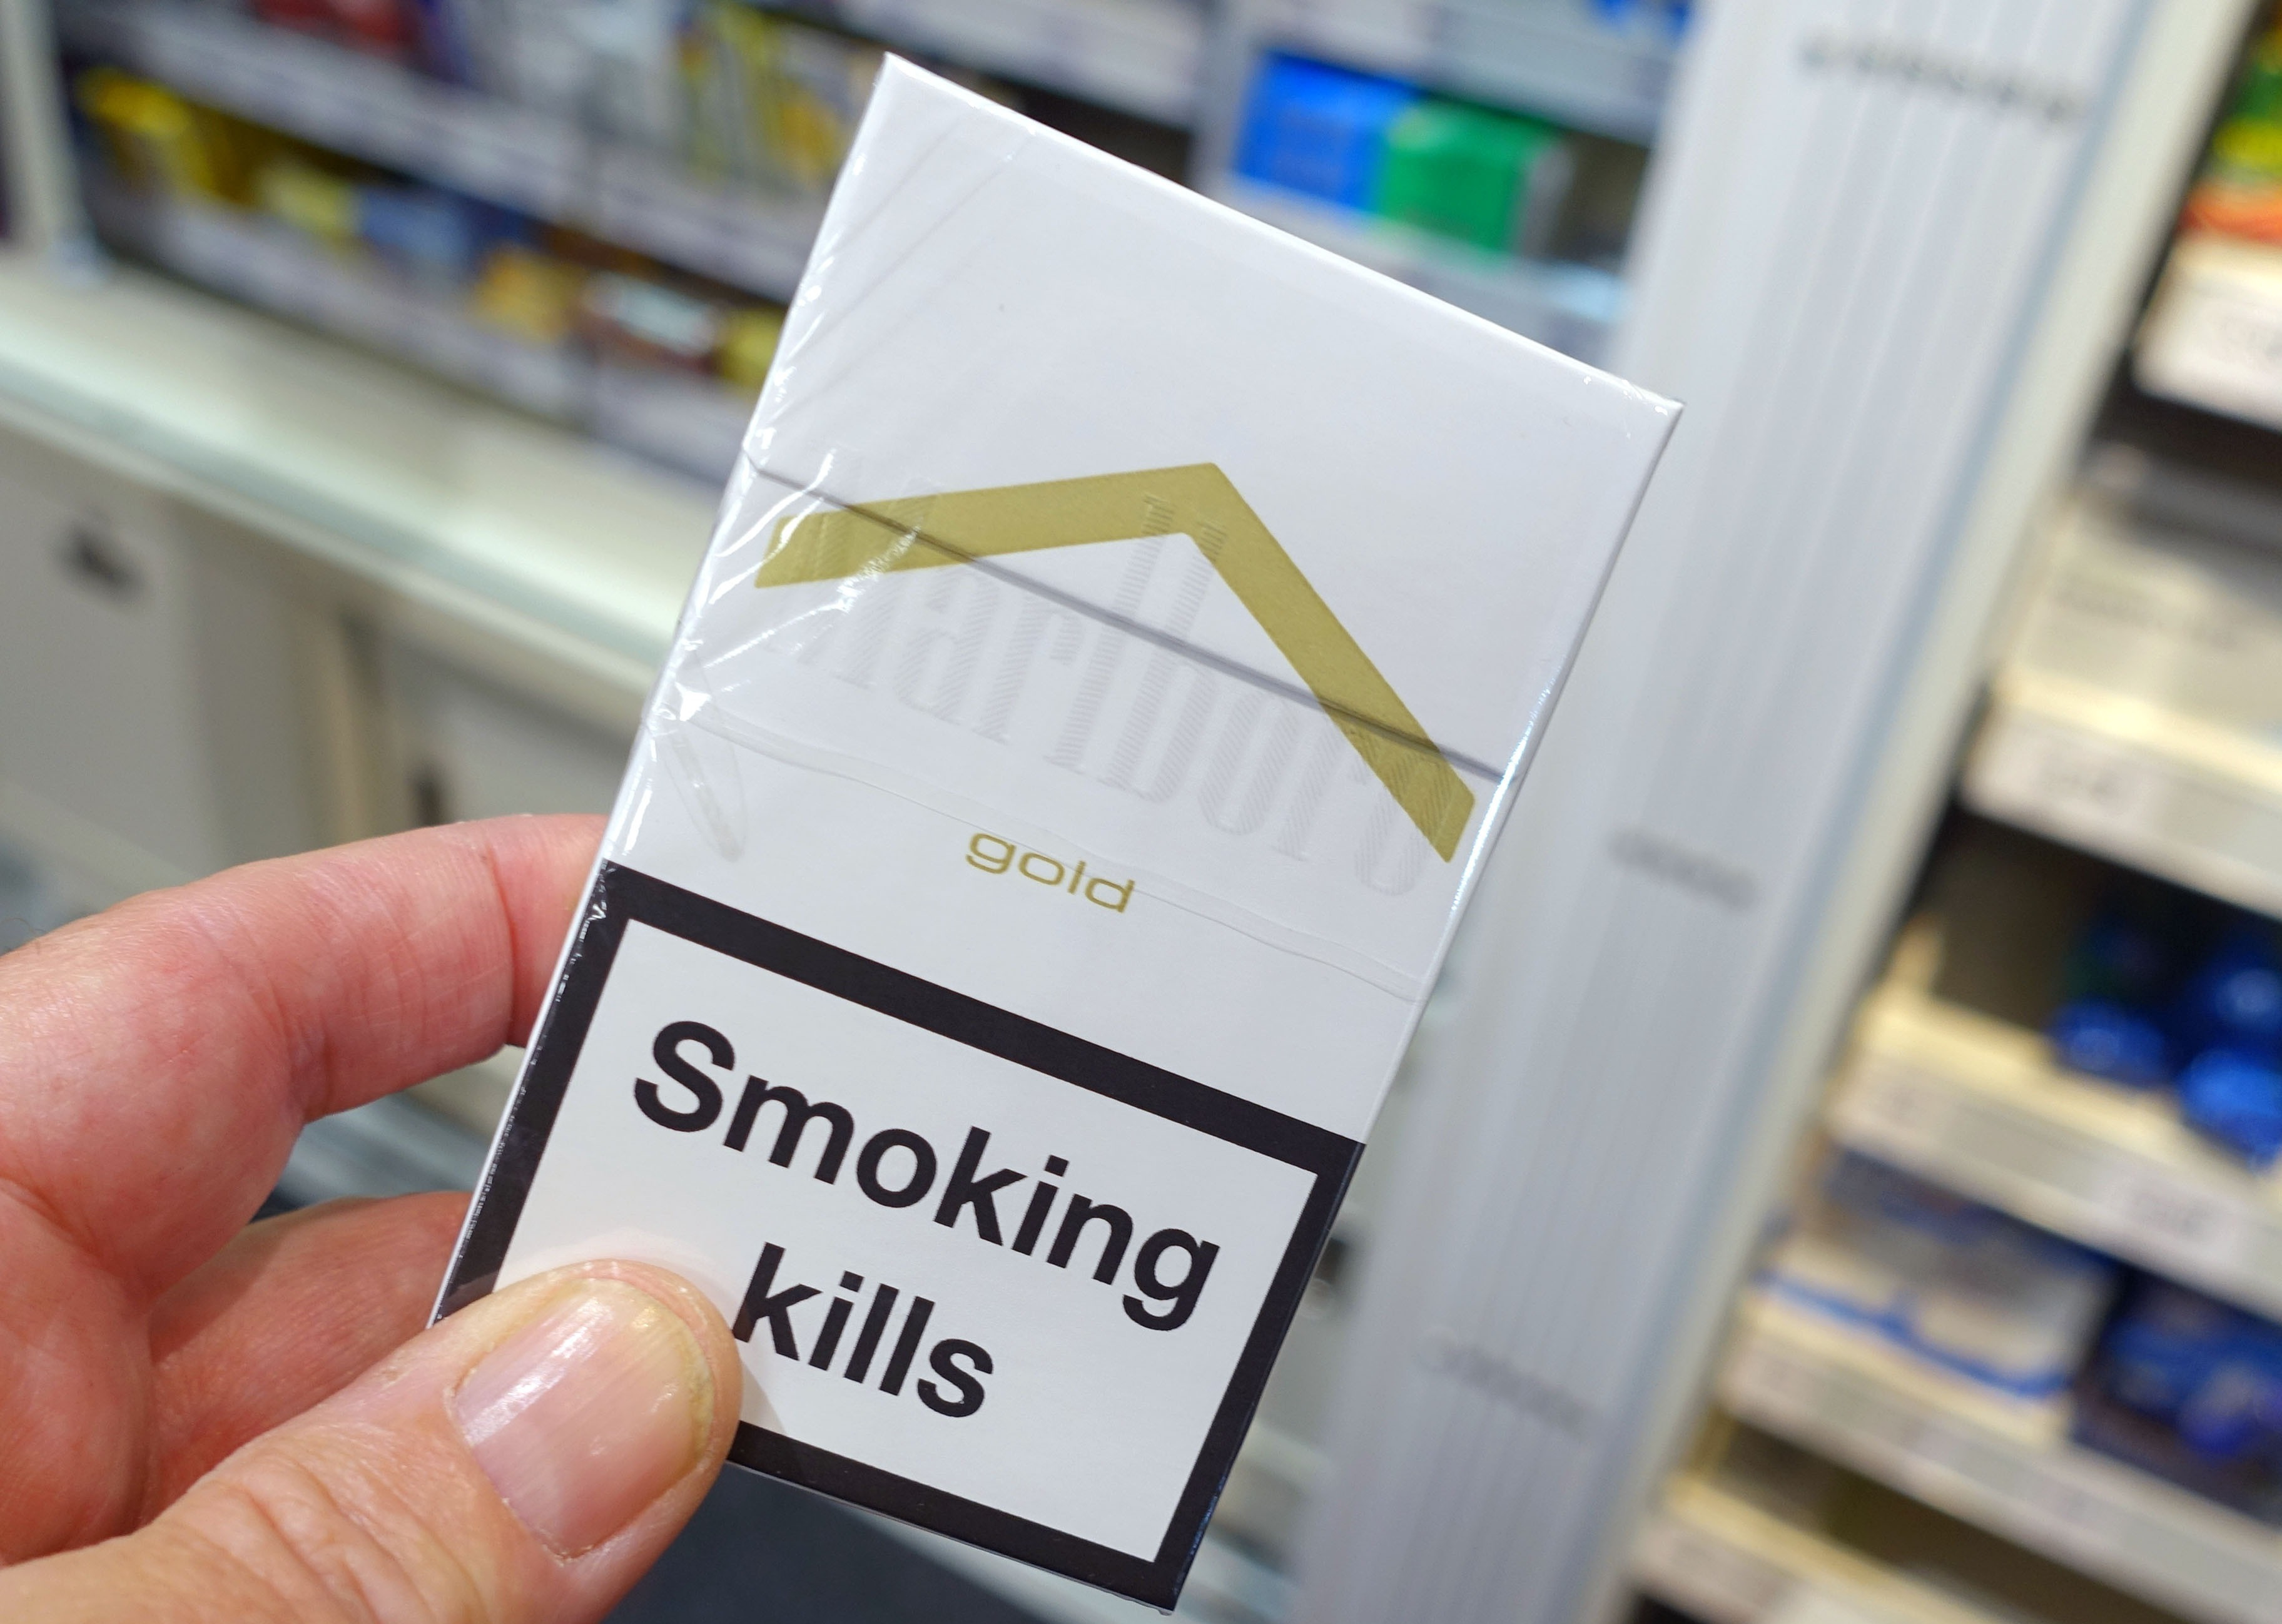 Plain packaging has led to a drop in smoking, study finds